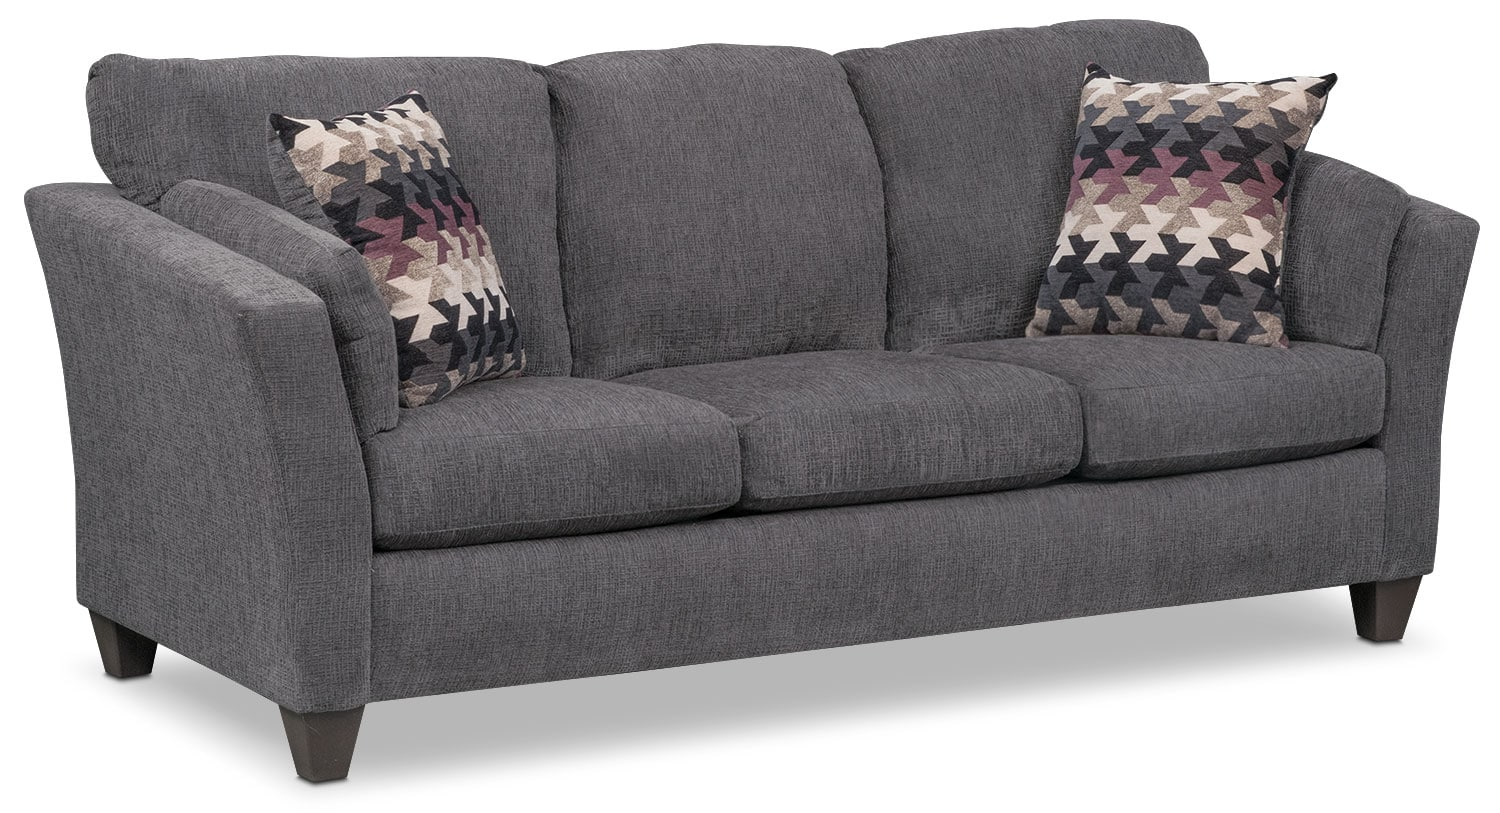 juno queen innerspring sleeper sofa smoke